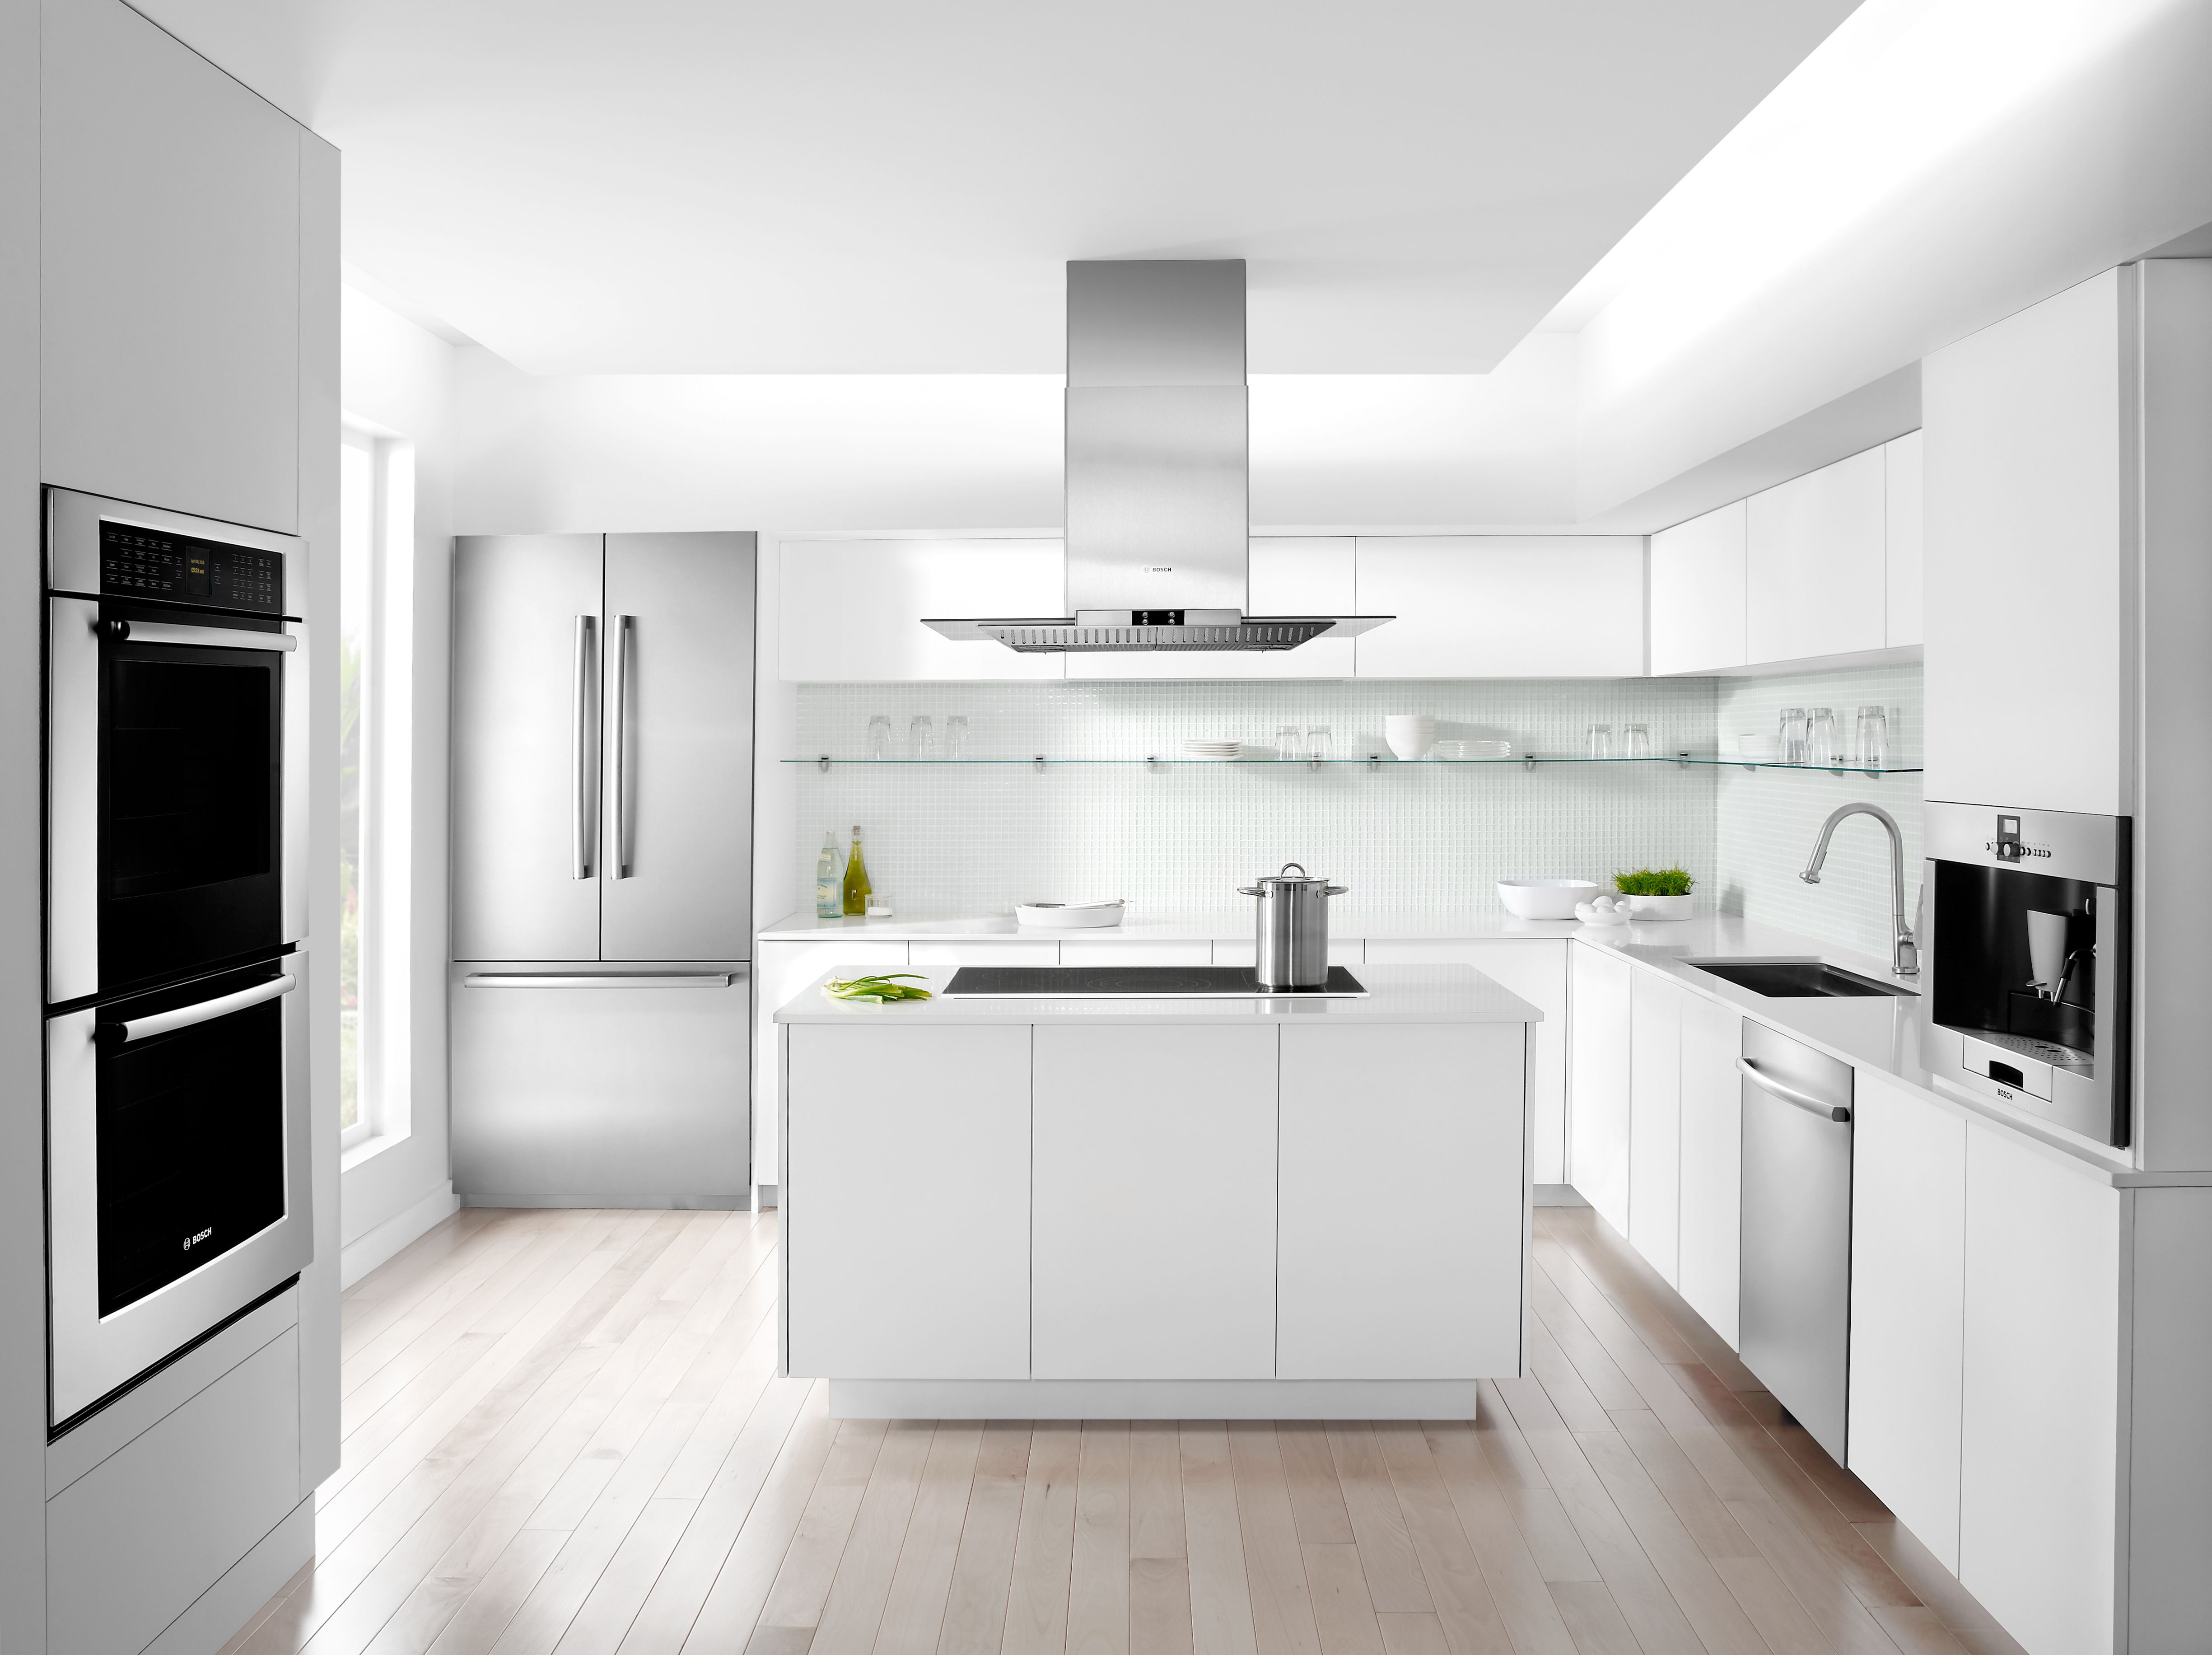 Contemporary Kitchen Flat Panels On Cabinetry Wall Install On Oven Check Out The Built In Coffe White Kitchen Design Modern Kitchen Design Kitchen Design